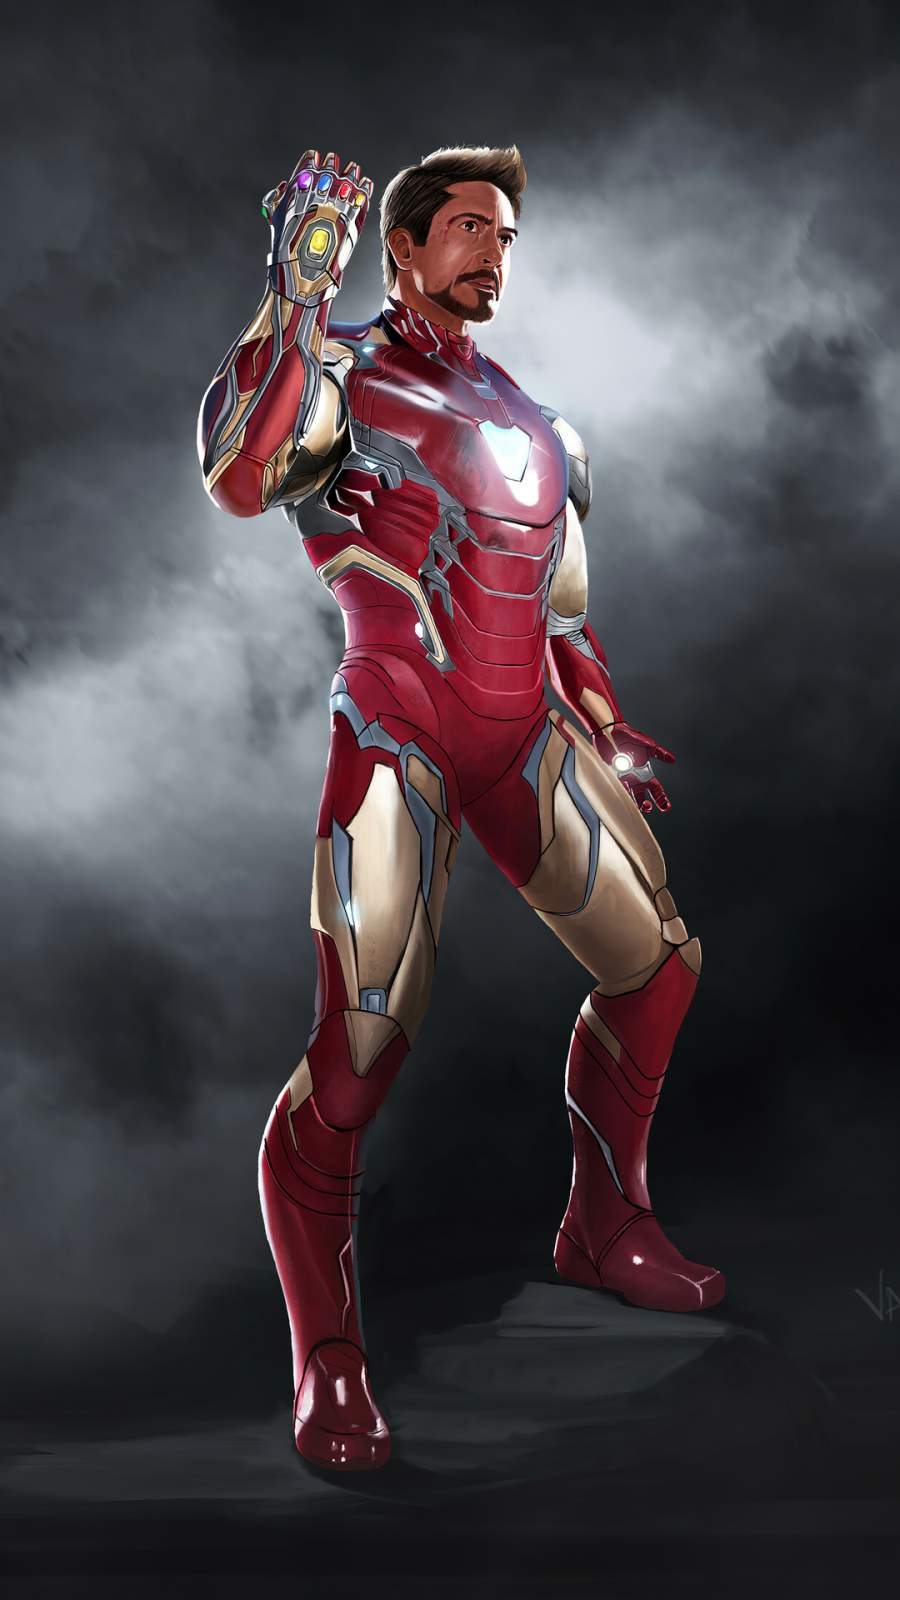 Iron Man 2020 iPhone Wallpaper